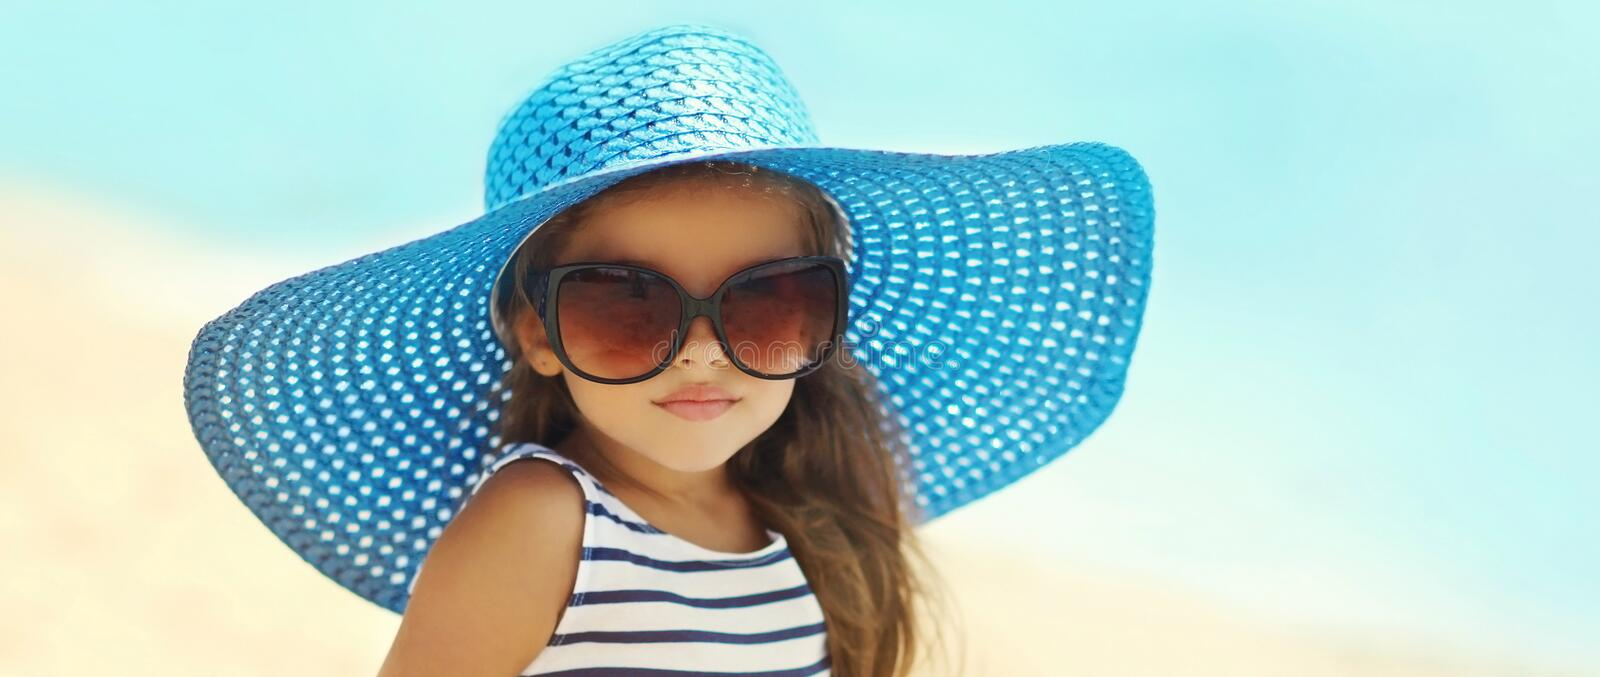 Summer portrait fashionable little girl in straw hat, sunglasses on beach stock photos